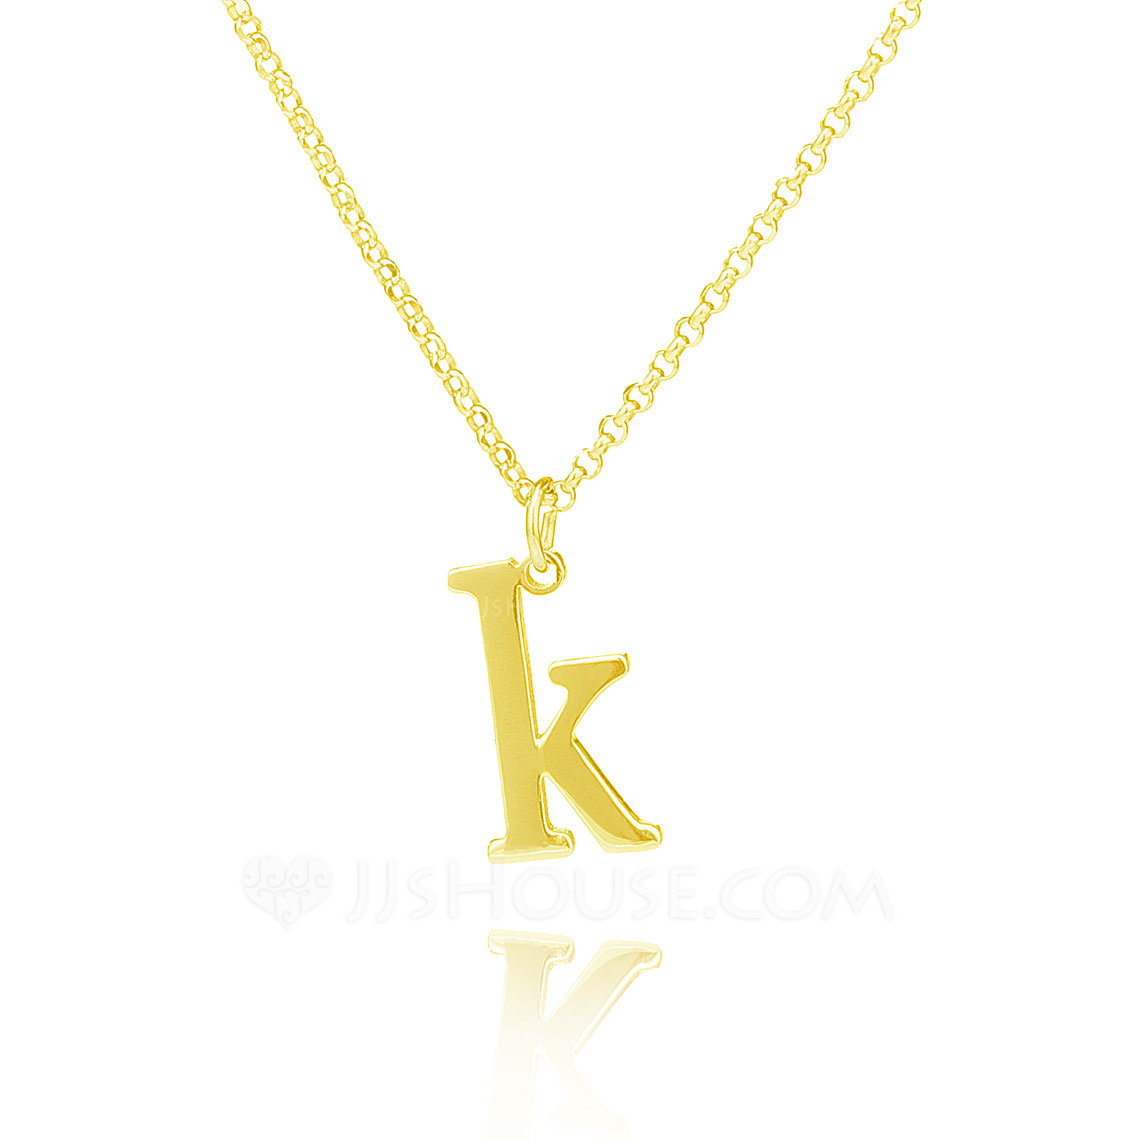 Custom 18k Gold Plated Silver Initial Letter Name Necklace Initial Necklace - Birthday Gifts Mother's Day Gifts